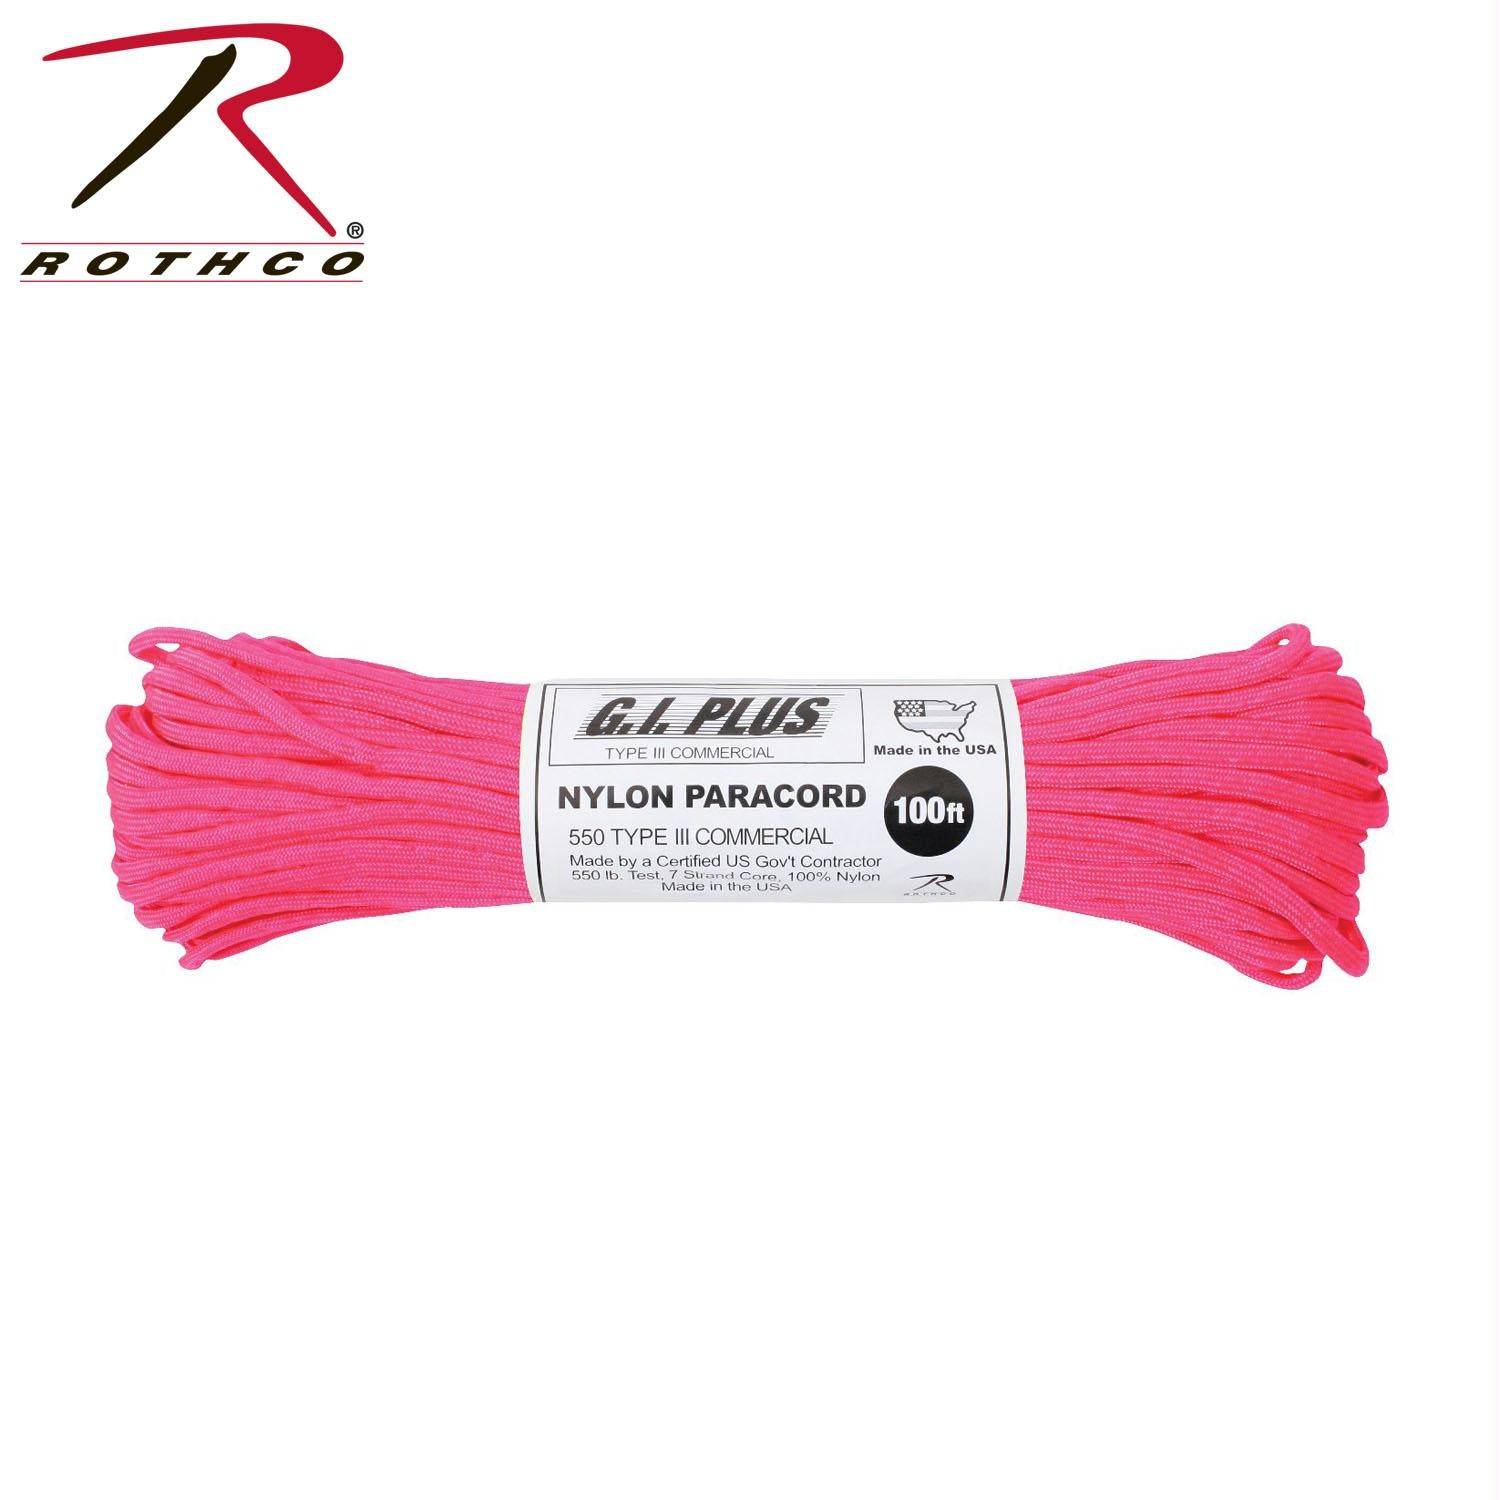 Rothco Nylon Paracord Type III 550 LB 100FT - Neon Pink